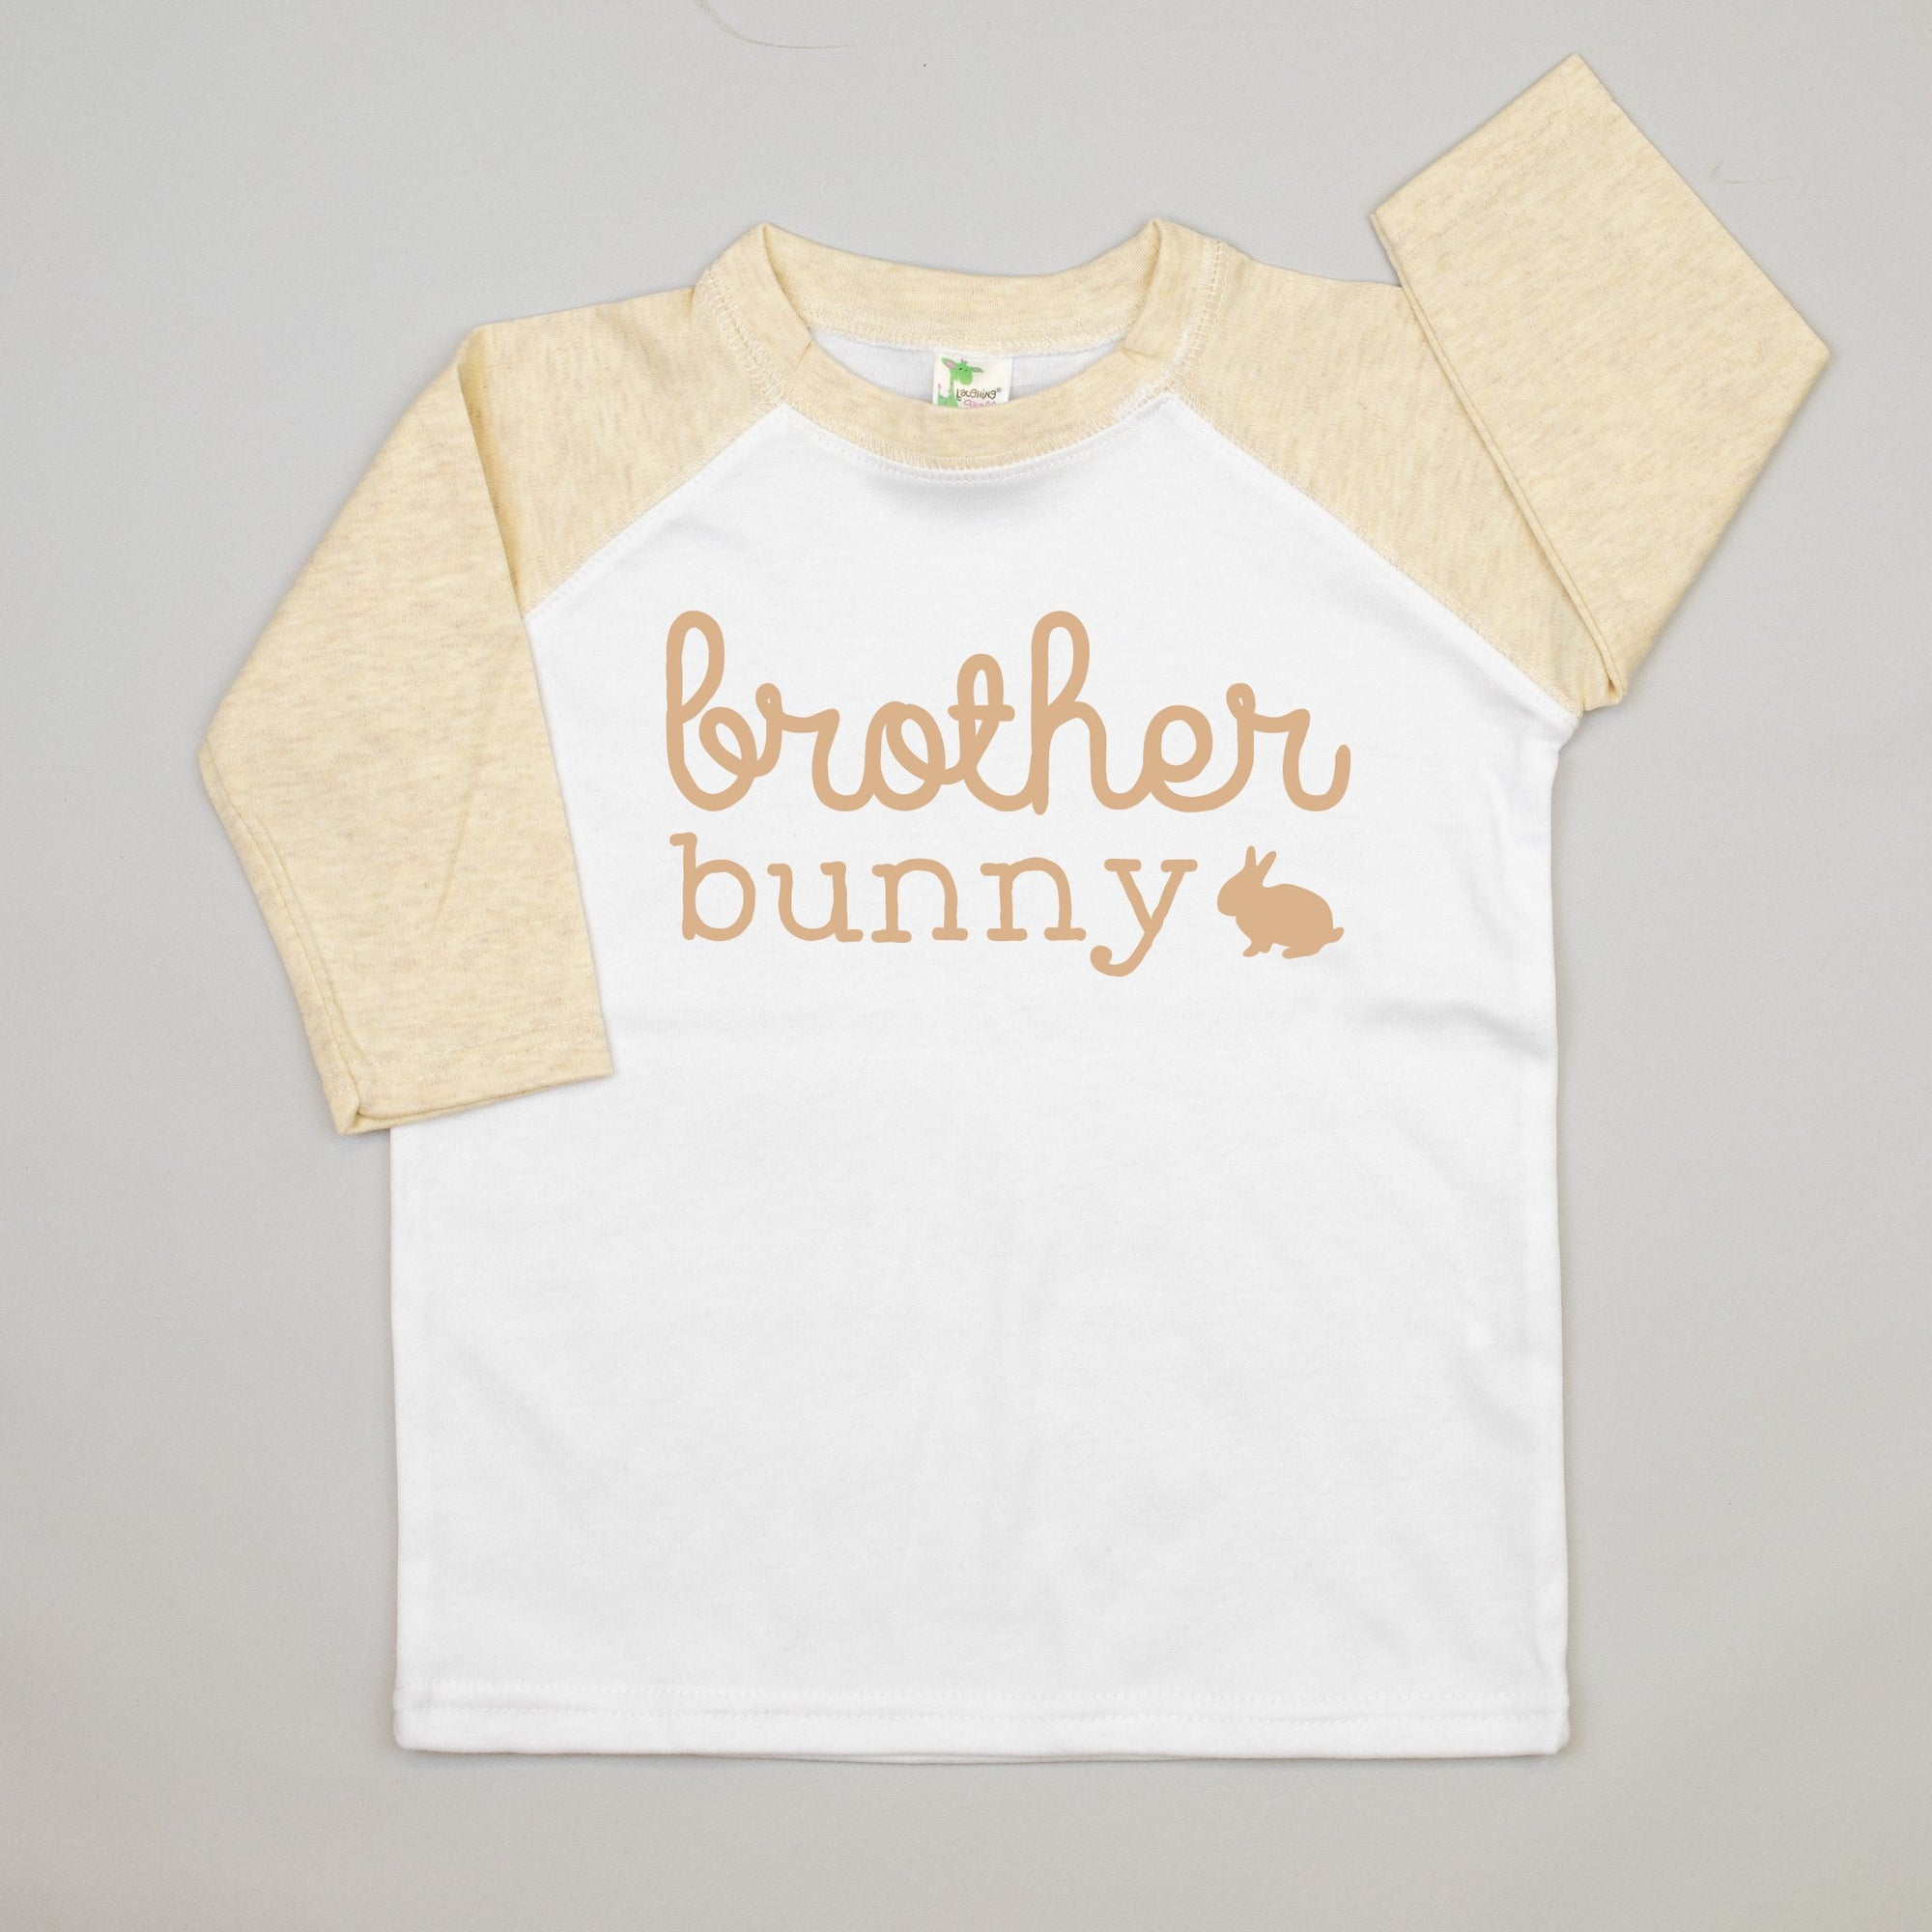 Cuddle Sleep Dream Brother Bunny | Oatmeal Raglan